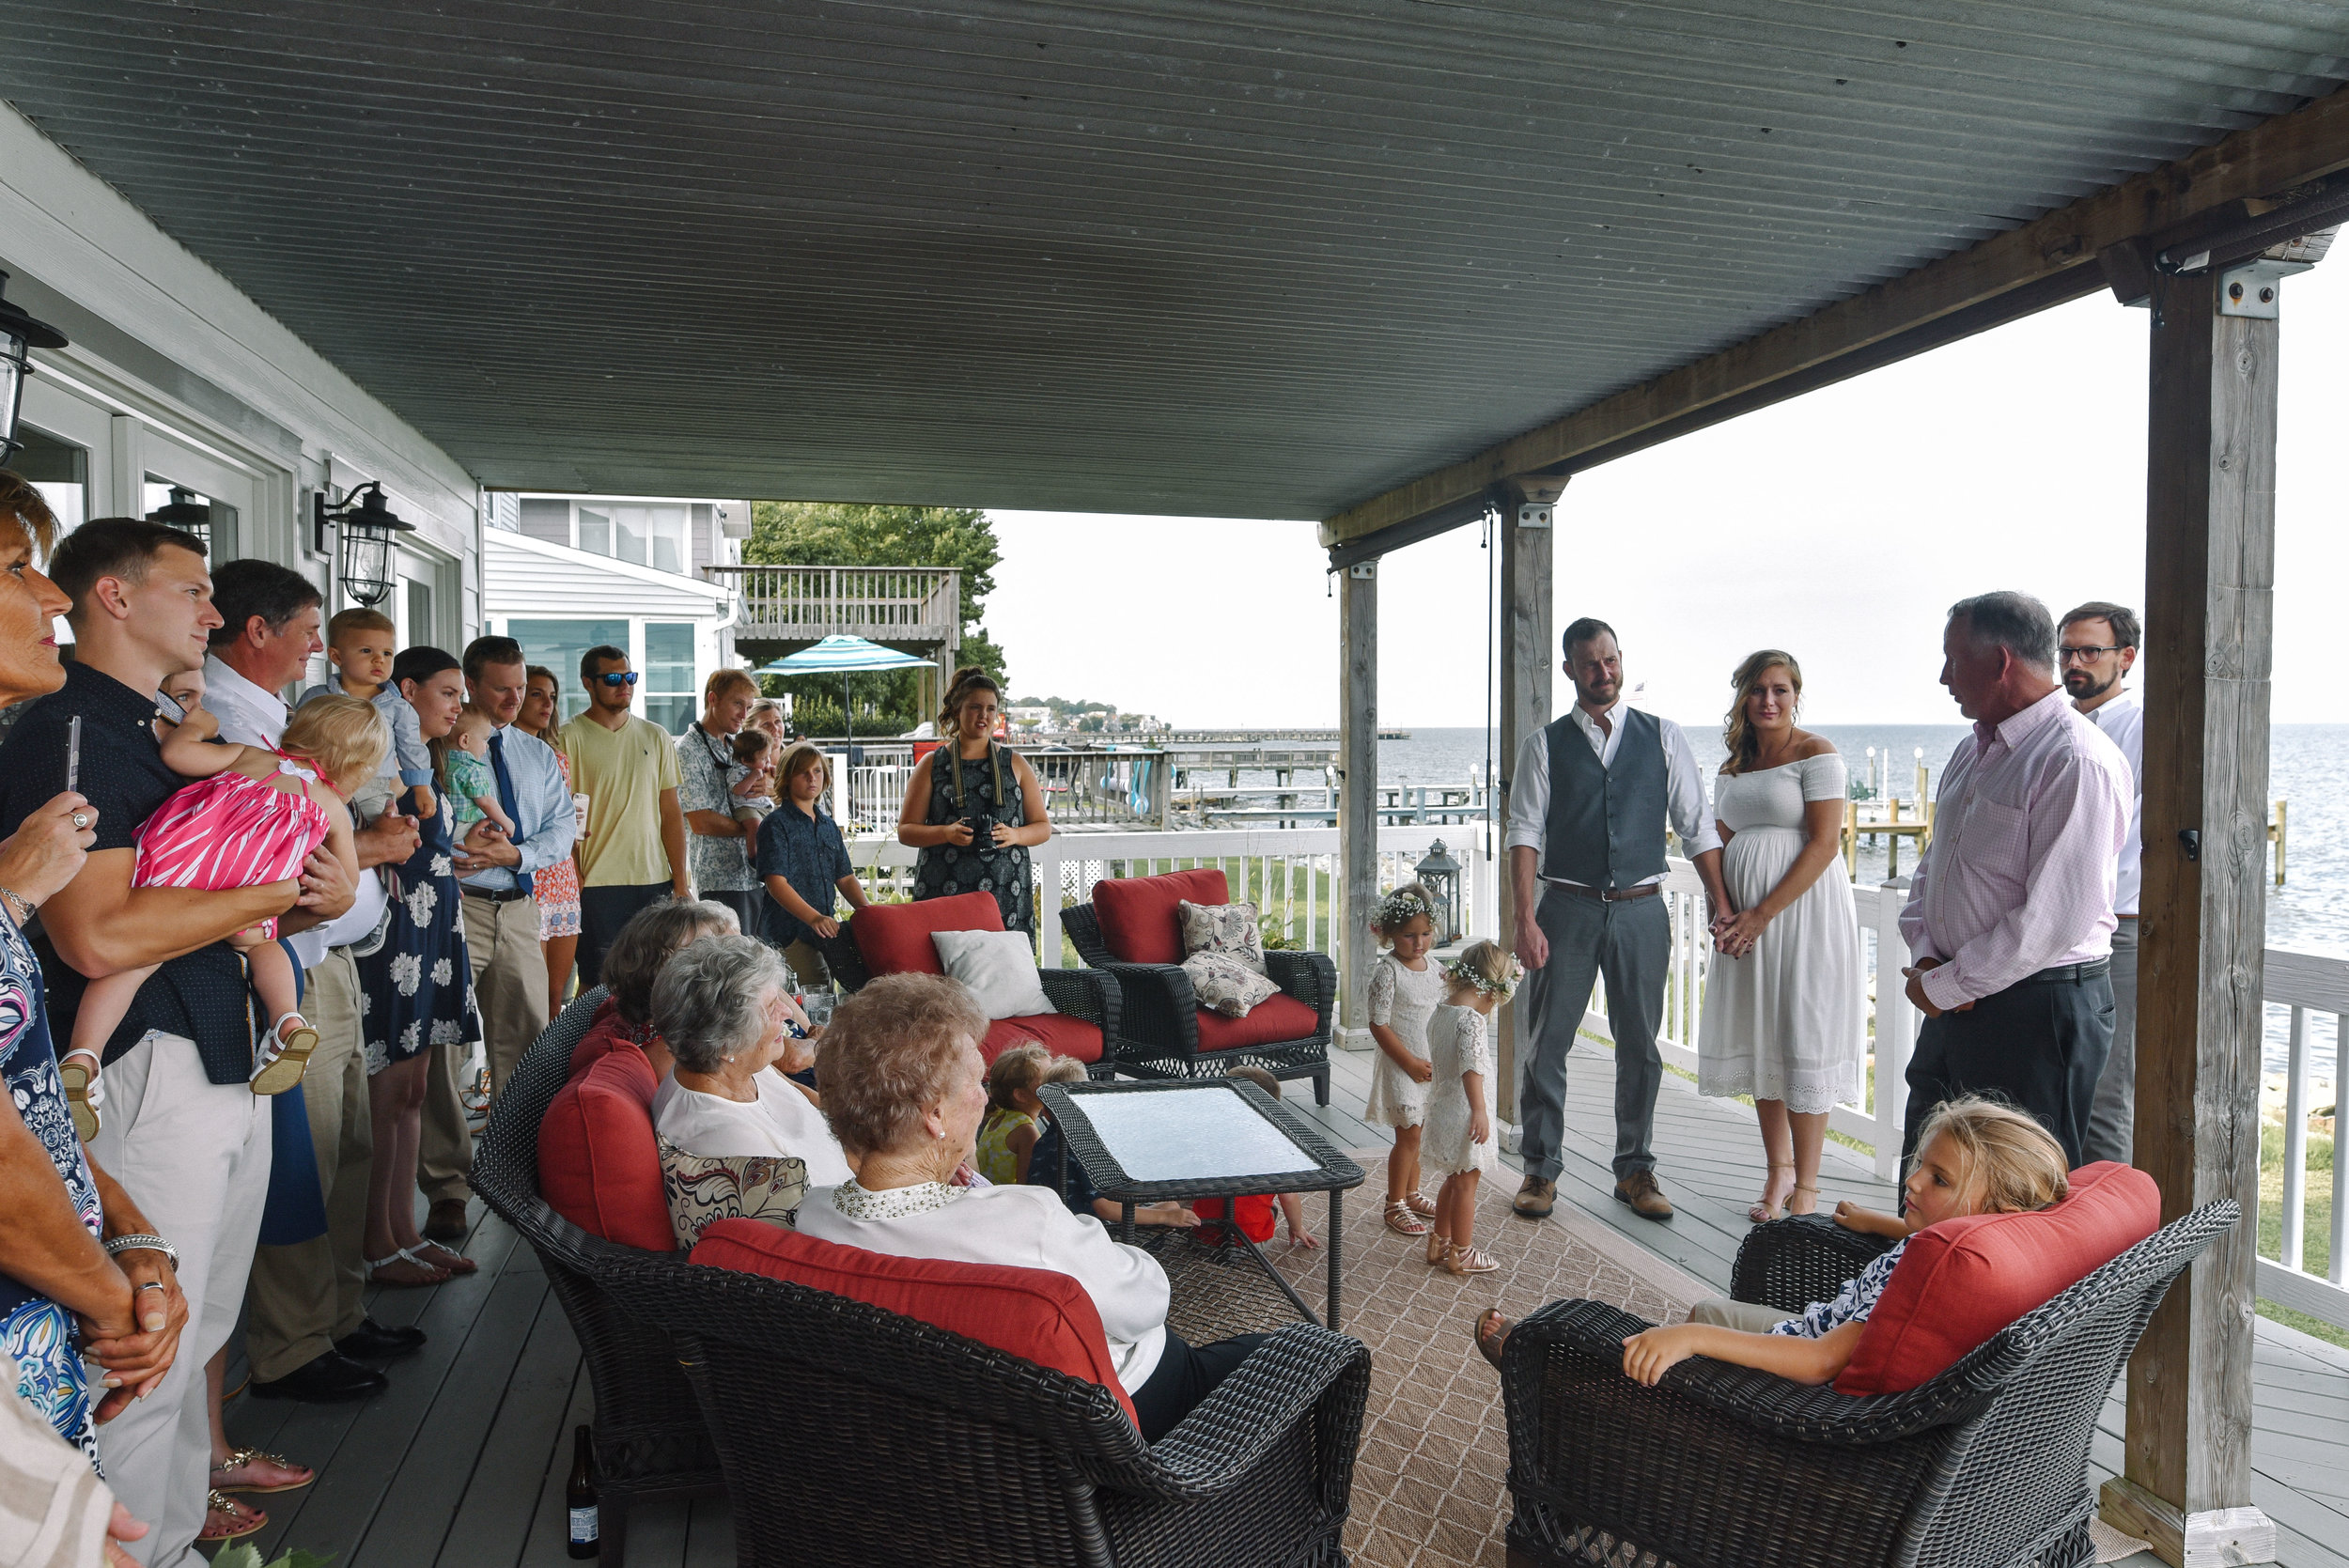 chesapeake_beach_backyard_wedding-43.jpg